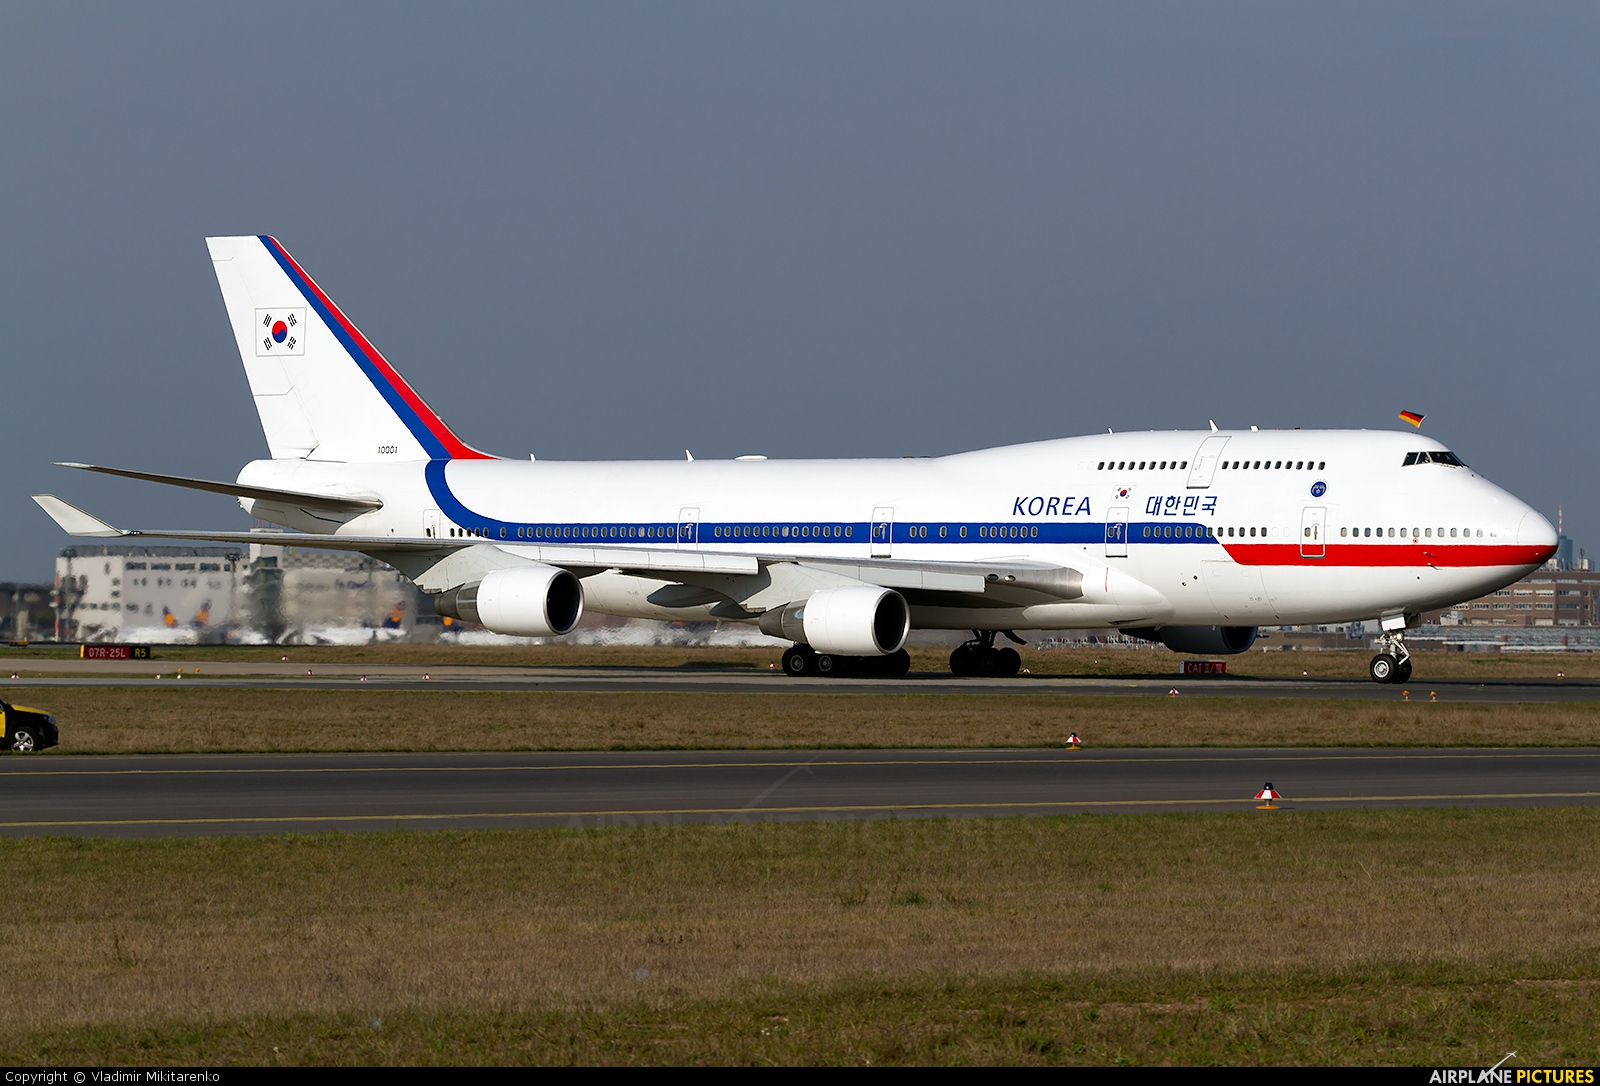 Korea (South) - Air Force 10001 aircraft at Frankfurt